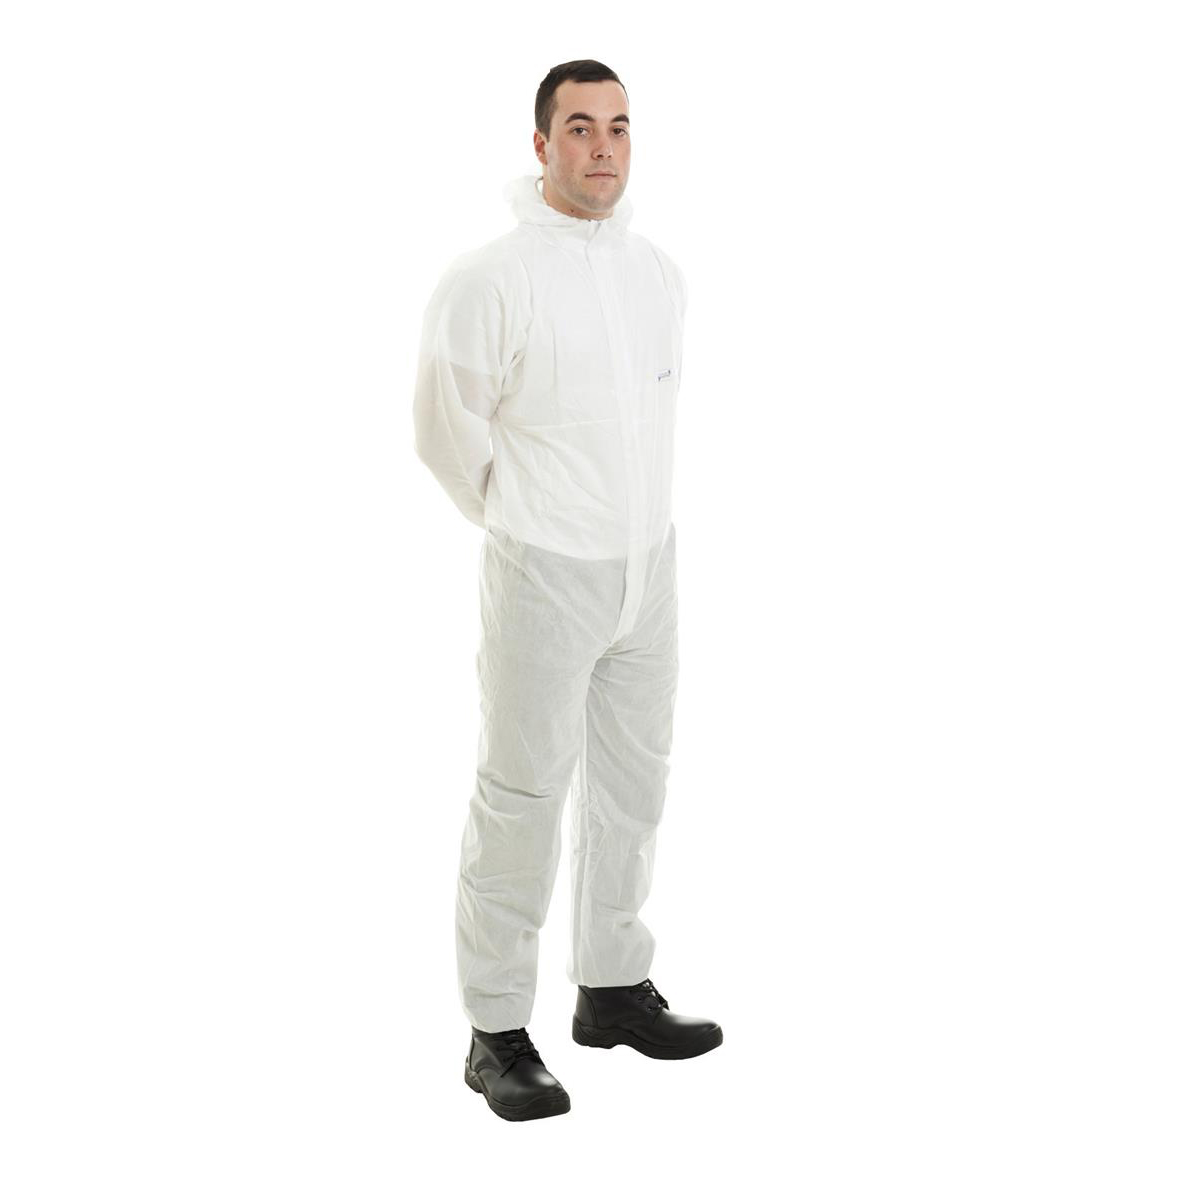 Supertouch Supertex SMS Coverall Type 5/6 Protection Large White Ref 17603 Approx 3 Day Leadtime